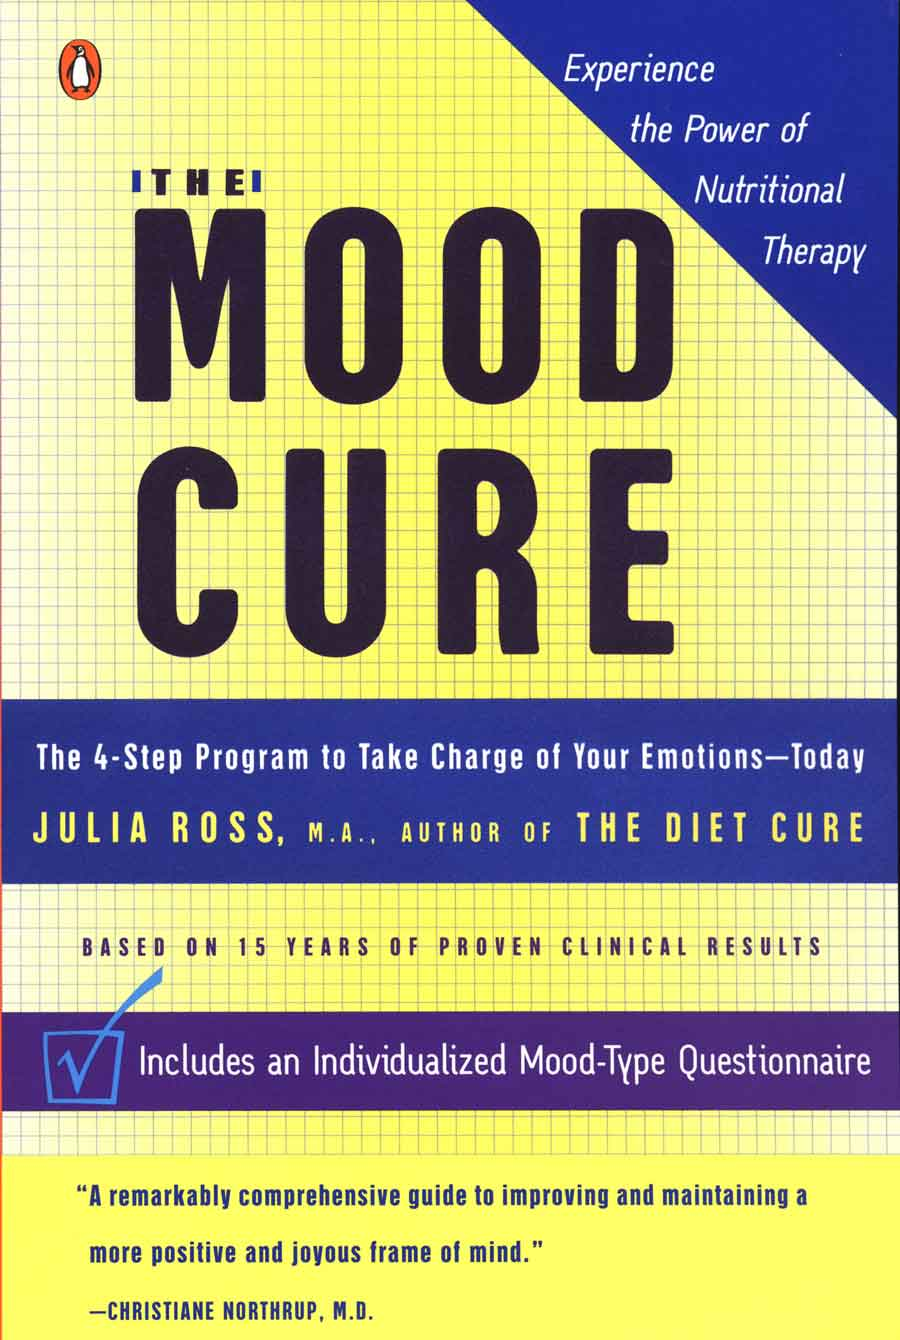 The Mood Cure    Her comprehensive program is based on the use of four mood-building amino acids and other surprisingly potent nutrient supplements, plus a diet rich in good-mood foods such as protein, healthy fat, and certain key vegetables. Including an individualized mood-type questionnaire.